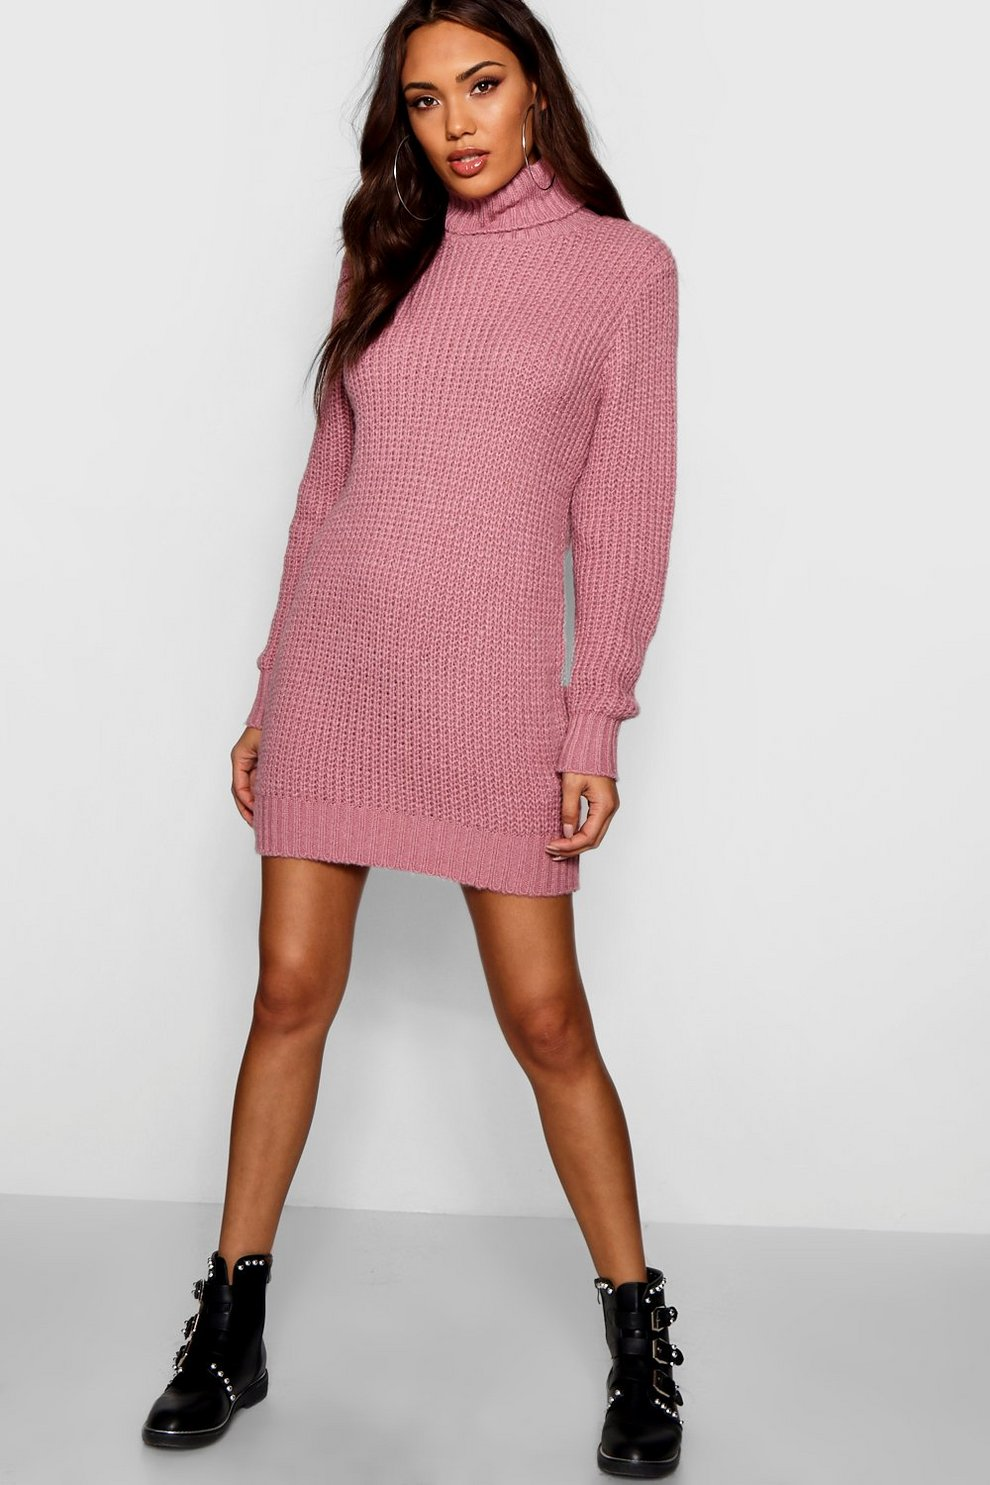 Robe pull col roulé en maille douce   Boohoo 59cdd708fc40